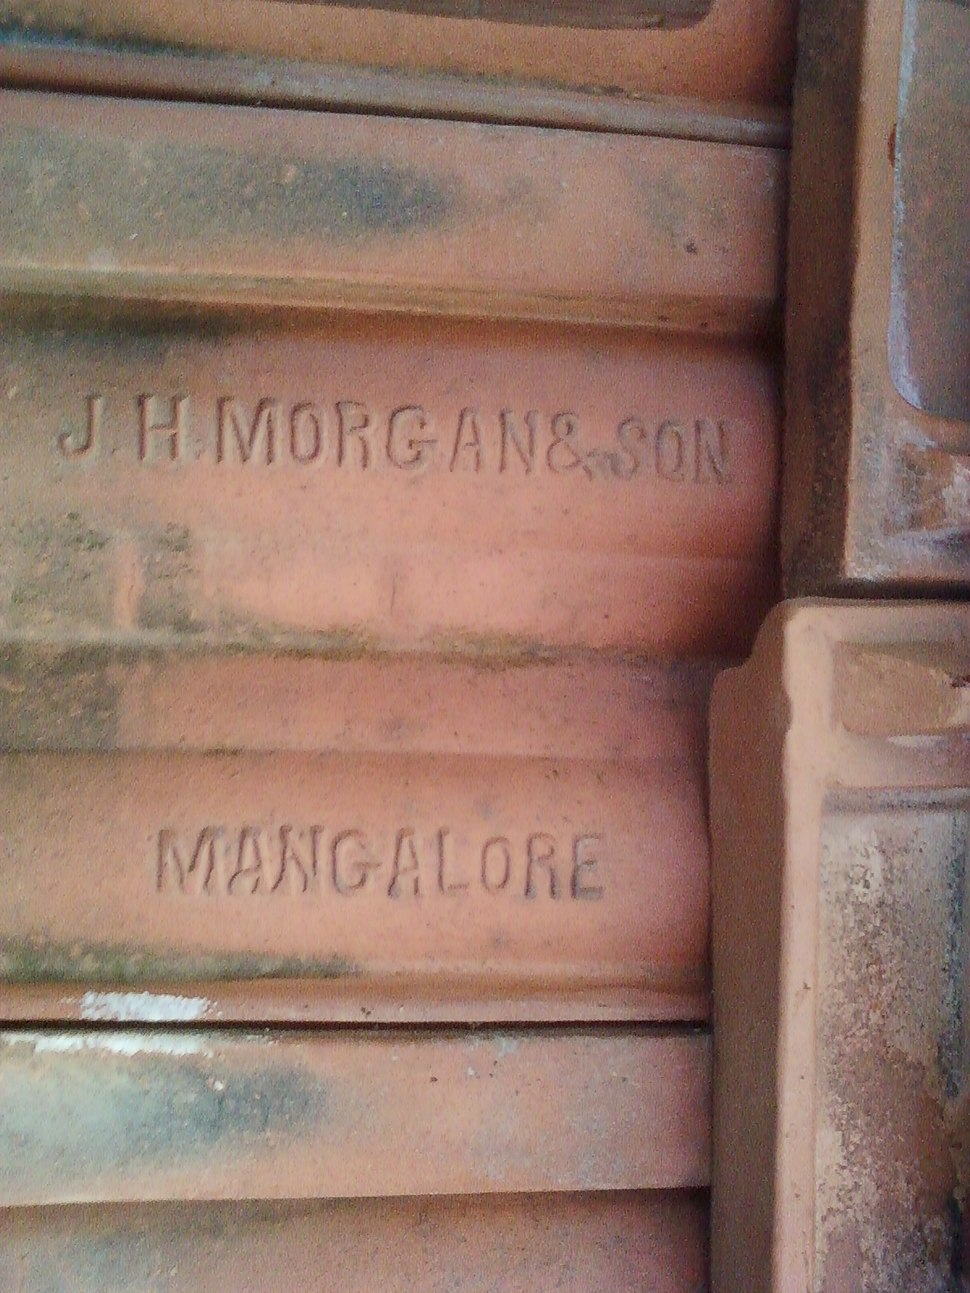 Thayyil Tharavadu roof tile manufactured by J. H. Morgan & Sons Mangalore 1868